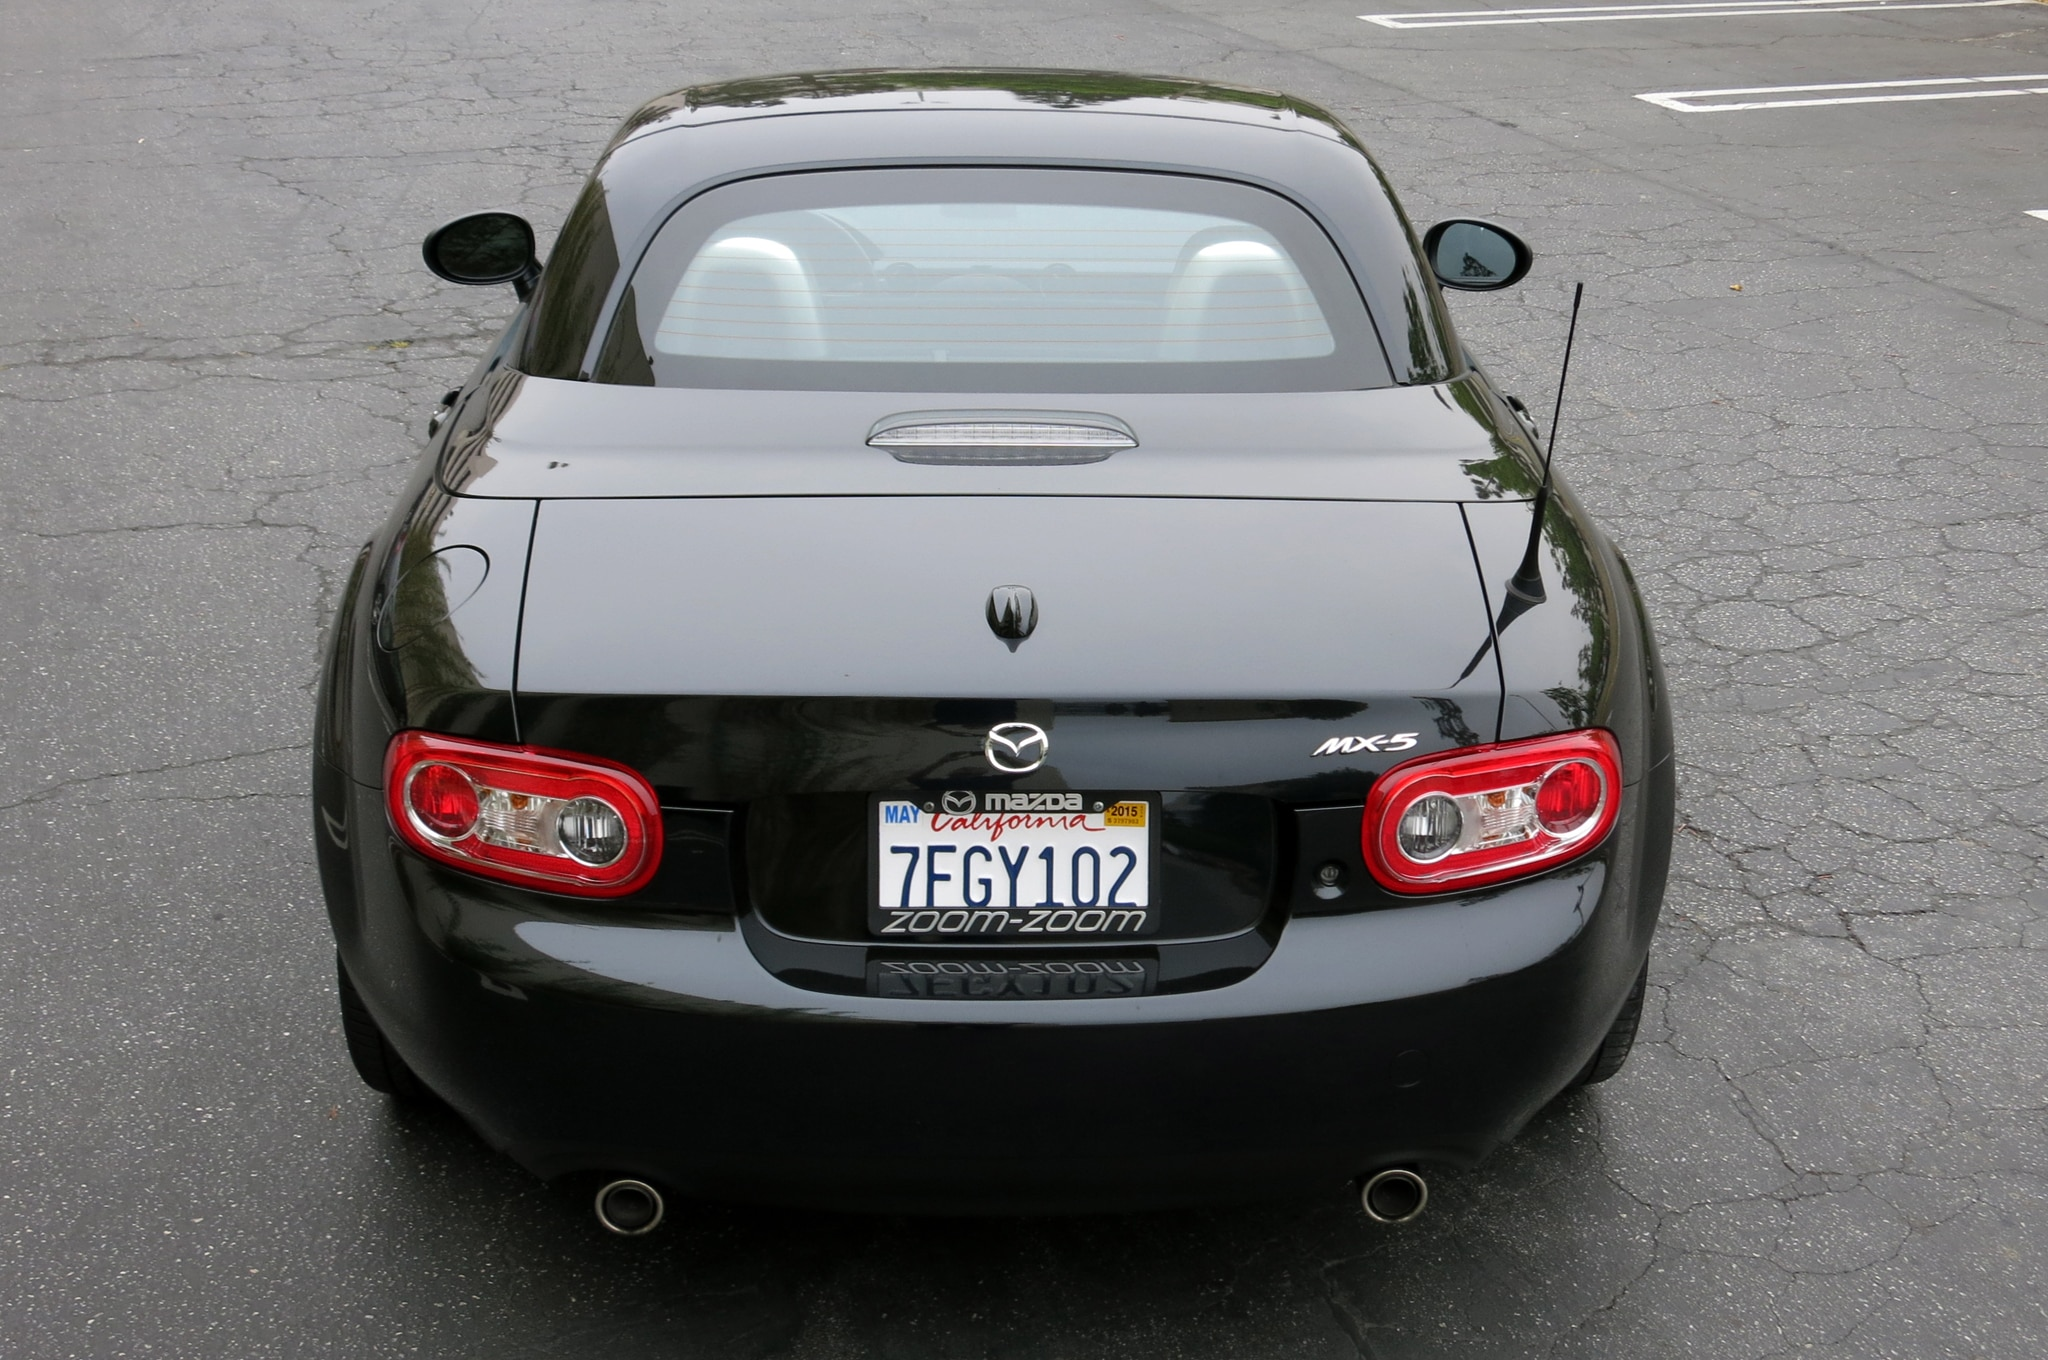 2014 mazda mx 5 miata grand touring prht rear view next gen mazda miata, alfa romeo spider spied 2008 Mazda Miata Trim Packages at suagrazia.org